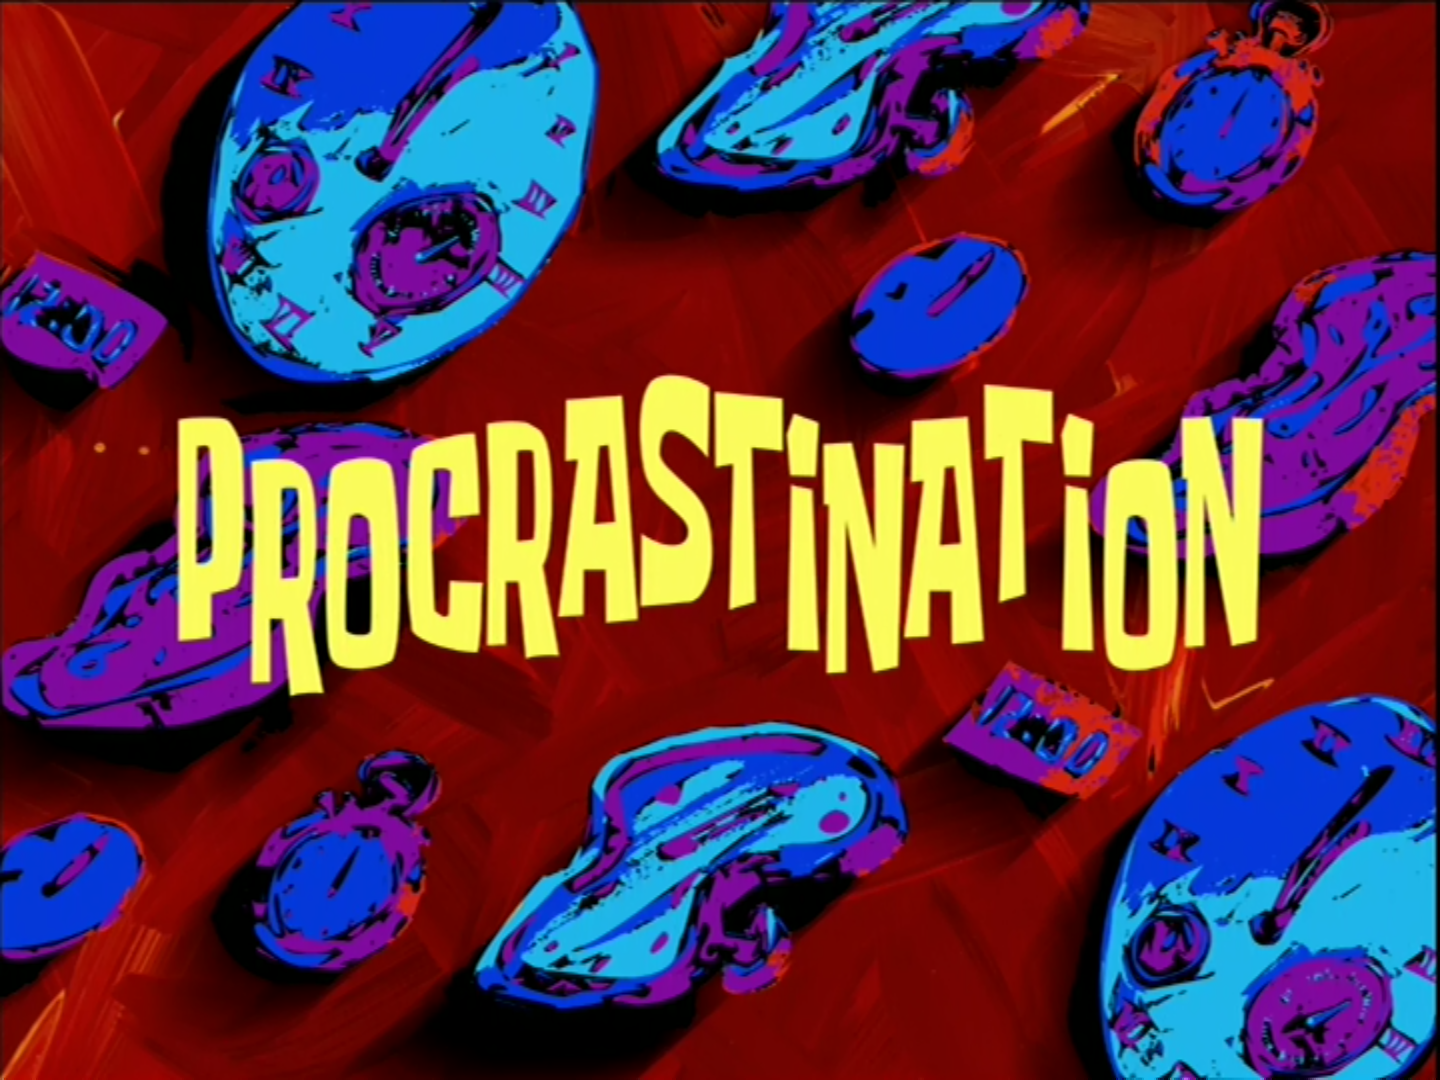 009 Procrastinationtranscript Encyclopedia Spongebobia Fandom Spongebob Writing Essay The Latestcb201806220 Gif Font For Hours Meme Rap Surprising Deleted Scene House Full